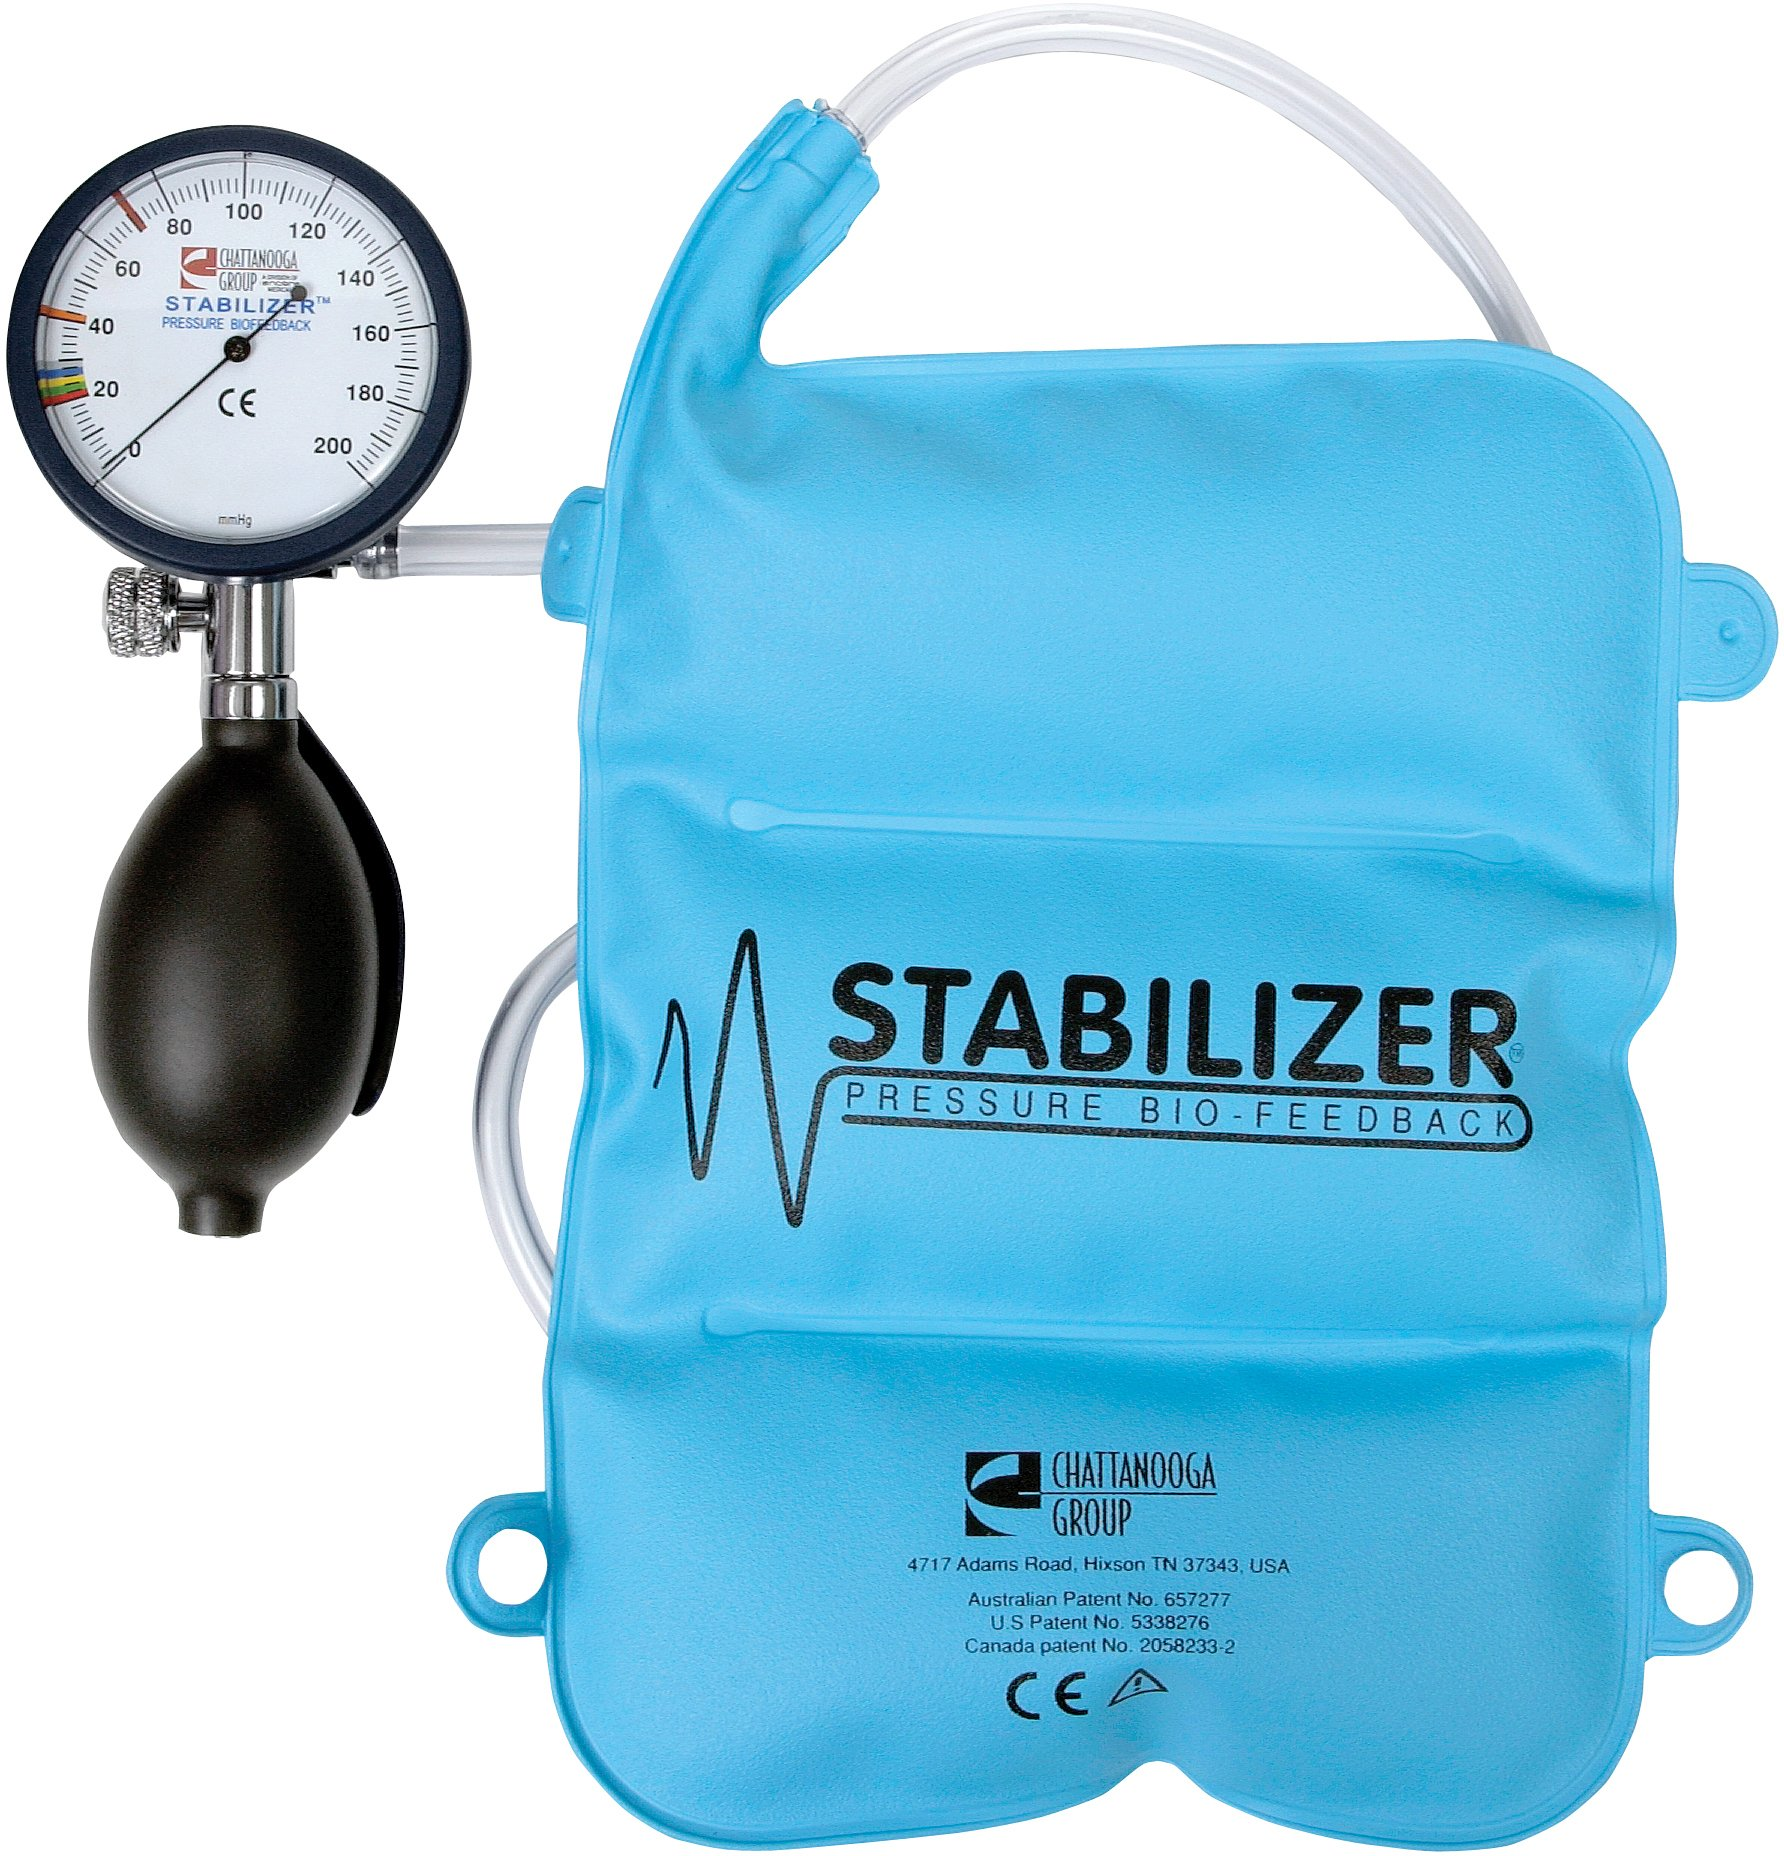 Chattanooga Stabilizer Pressure Biofeedback by Chattanooga